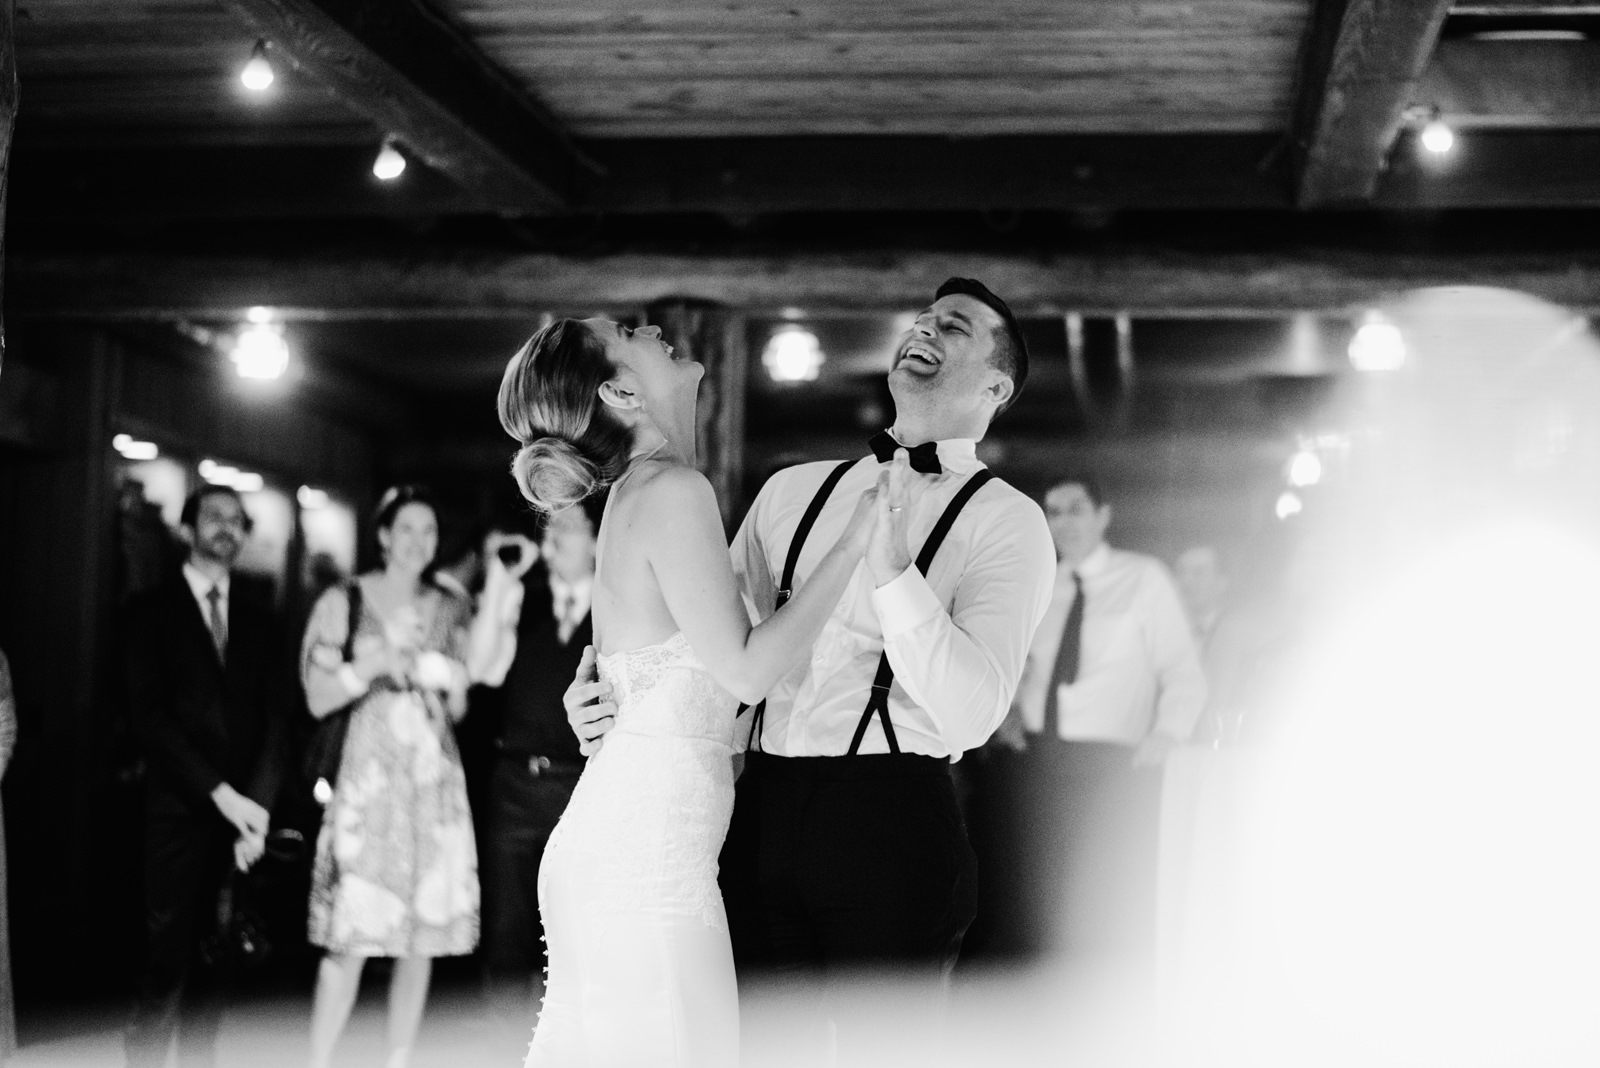 045-photojournalistic-photo-of-bride-and-groom-s-joyful-first-dance-by-ryan-flynn.jpg